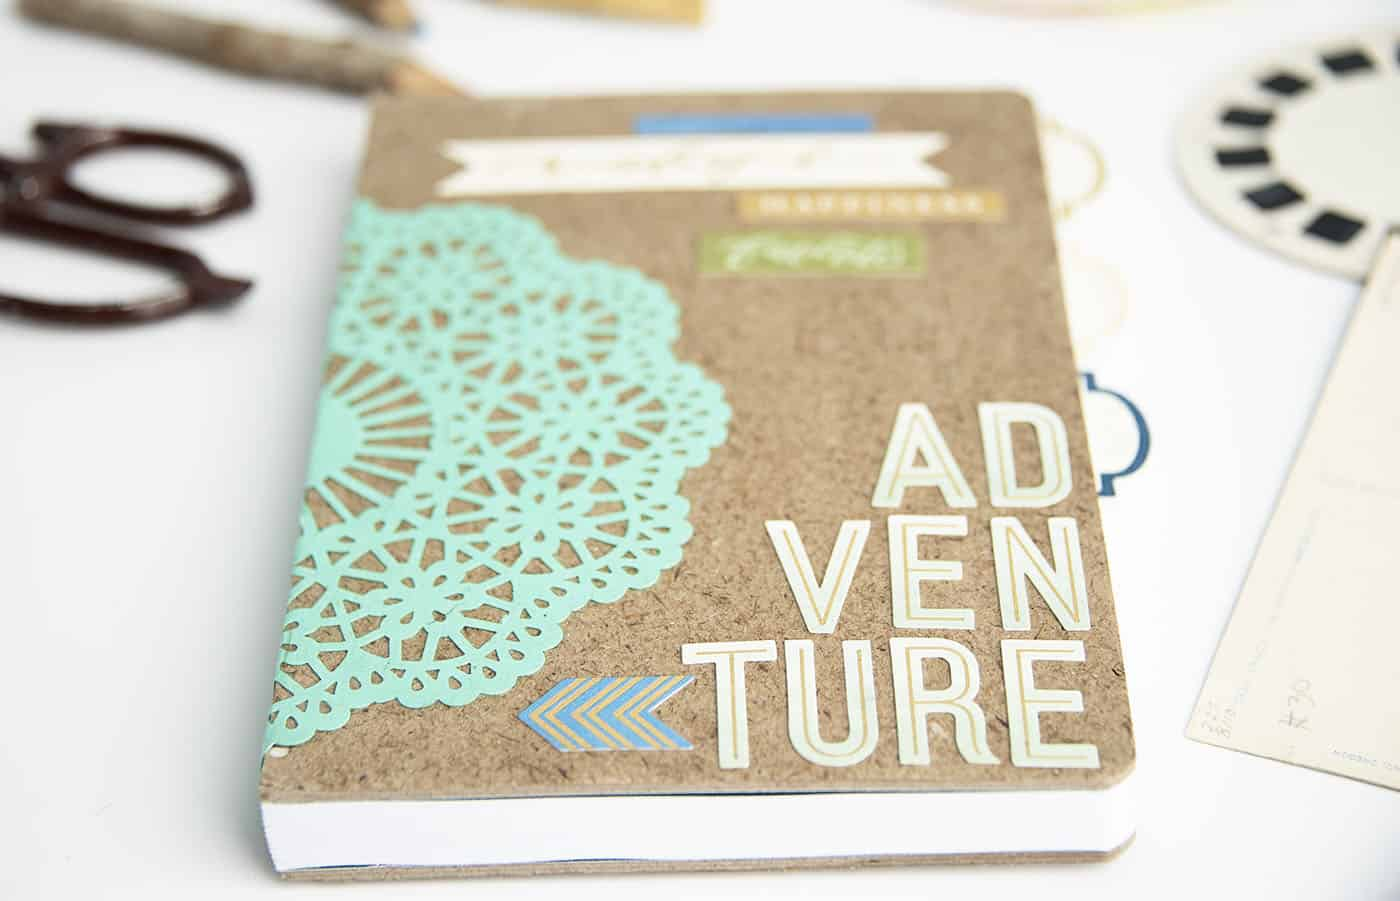 DIY notebook made with Mod Podge